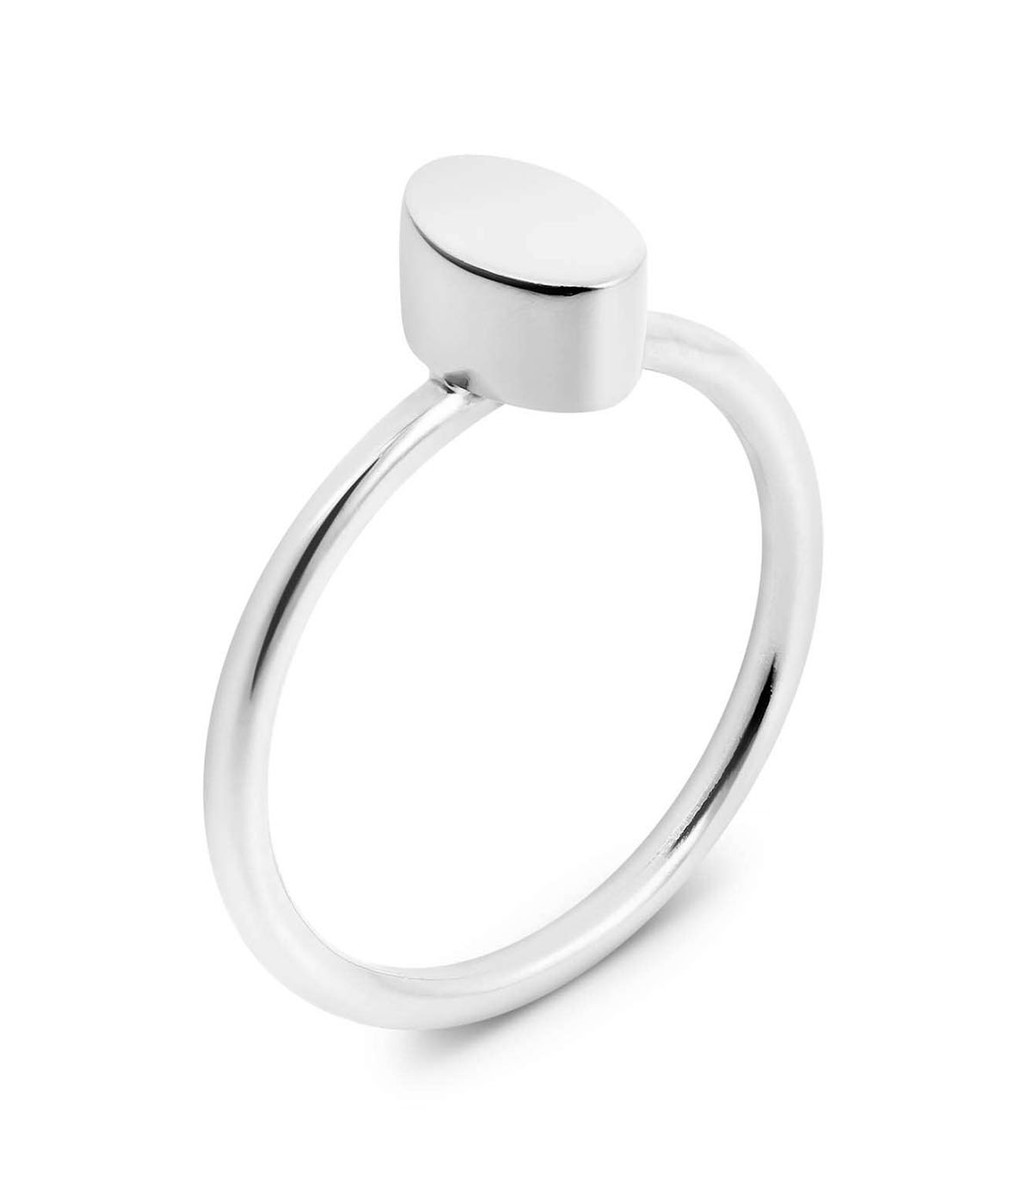 Joidart Toujours Oval Silver Ring